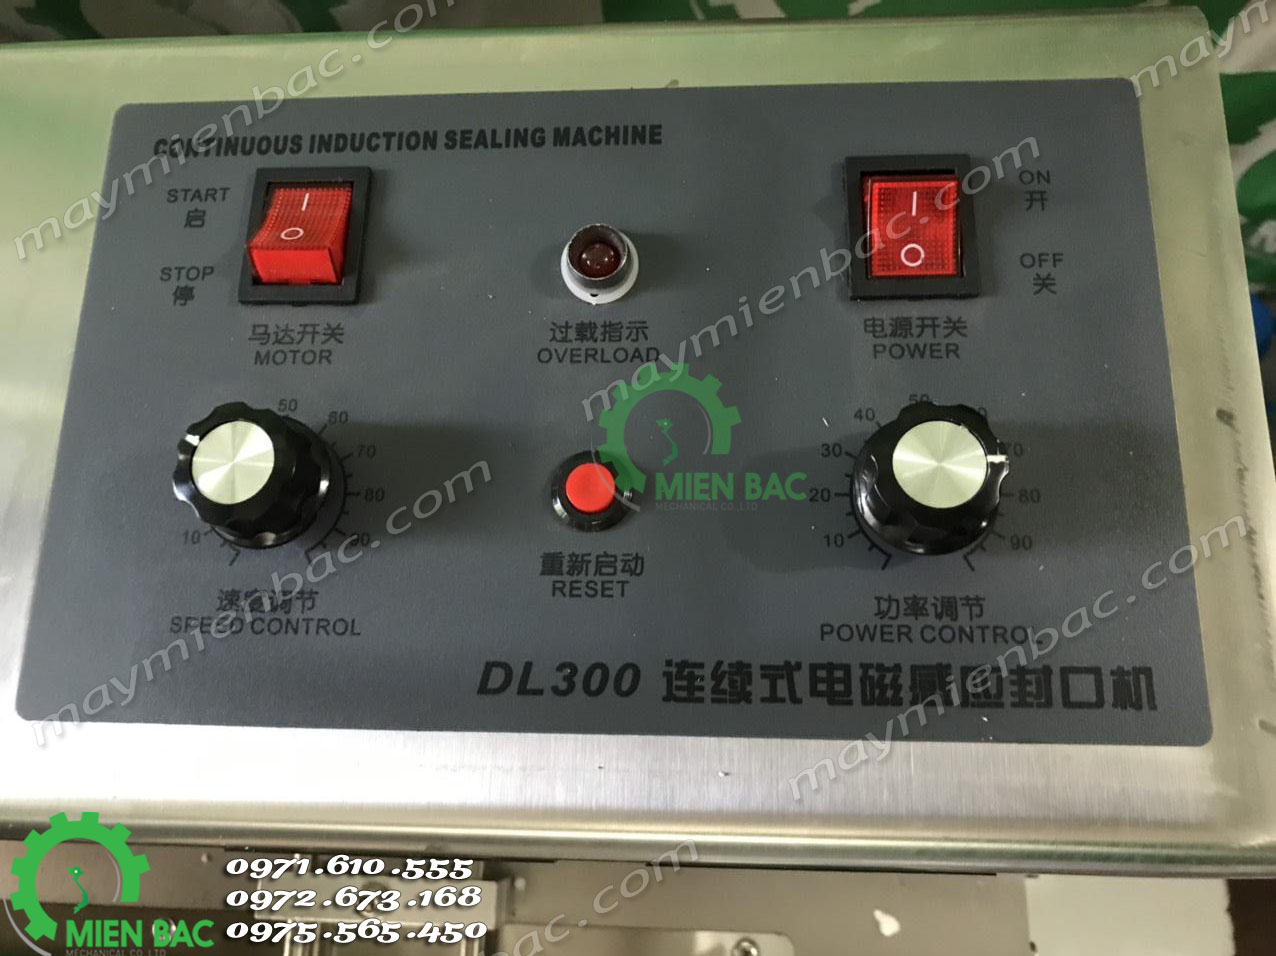 maymienbac-may-dan-mang-seal-dl-300-3-quat-01